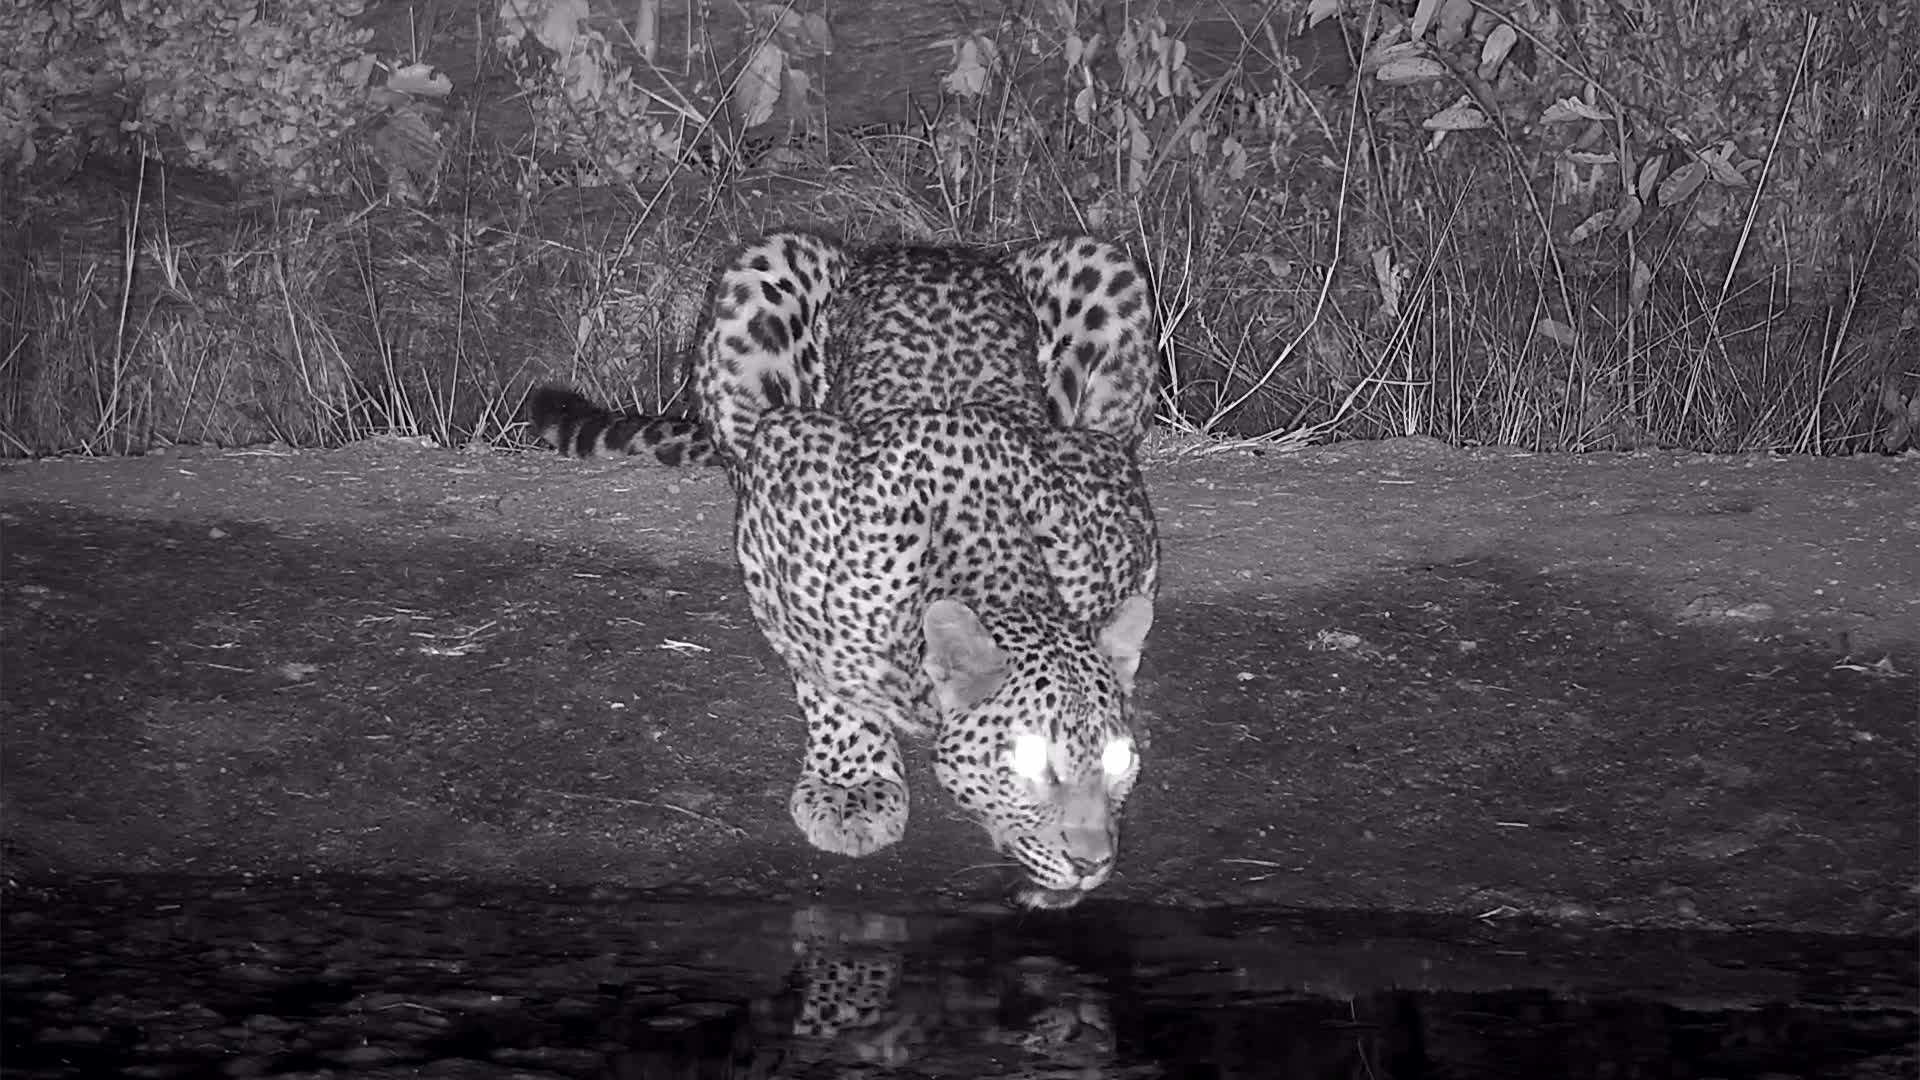 VIDEO:  Leopard:  Drinking and marking its territory